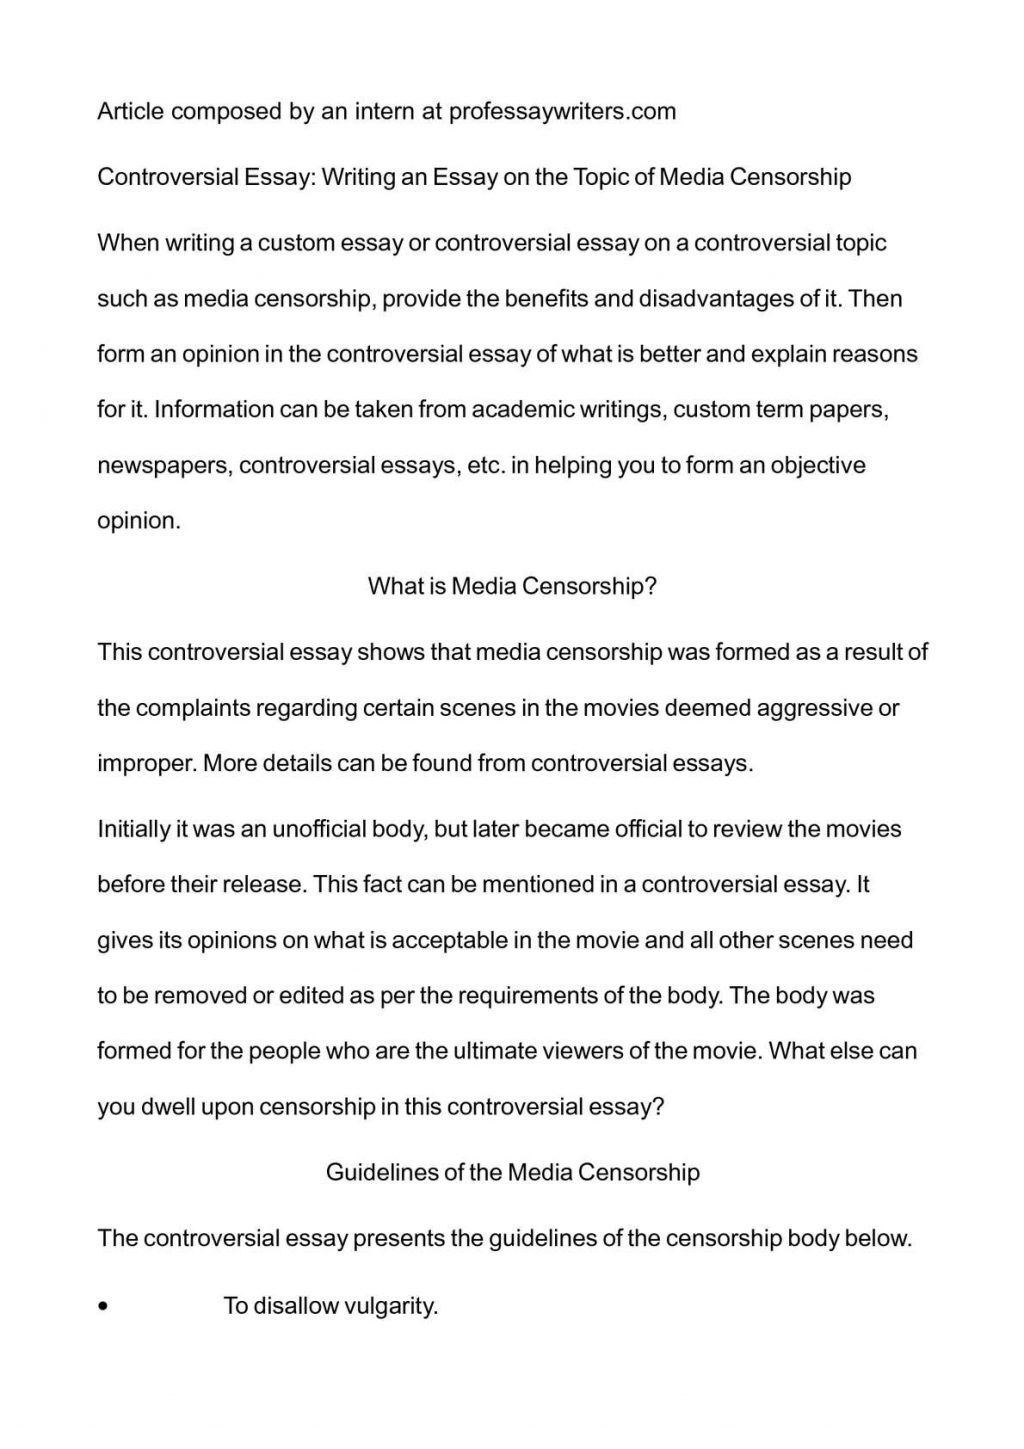 012 Research Paper Controversial Essay On Immigration Topics Essays Thomas Sowell Pdf20 1024x1449 Best Issues Large